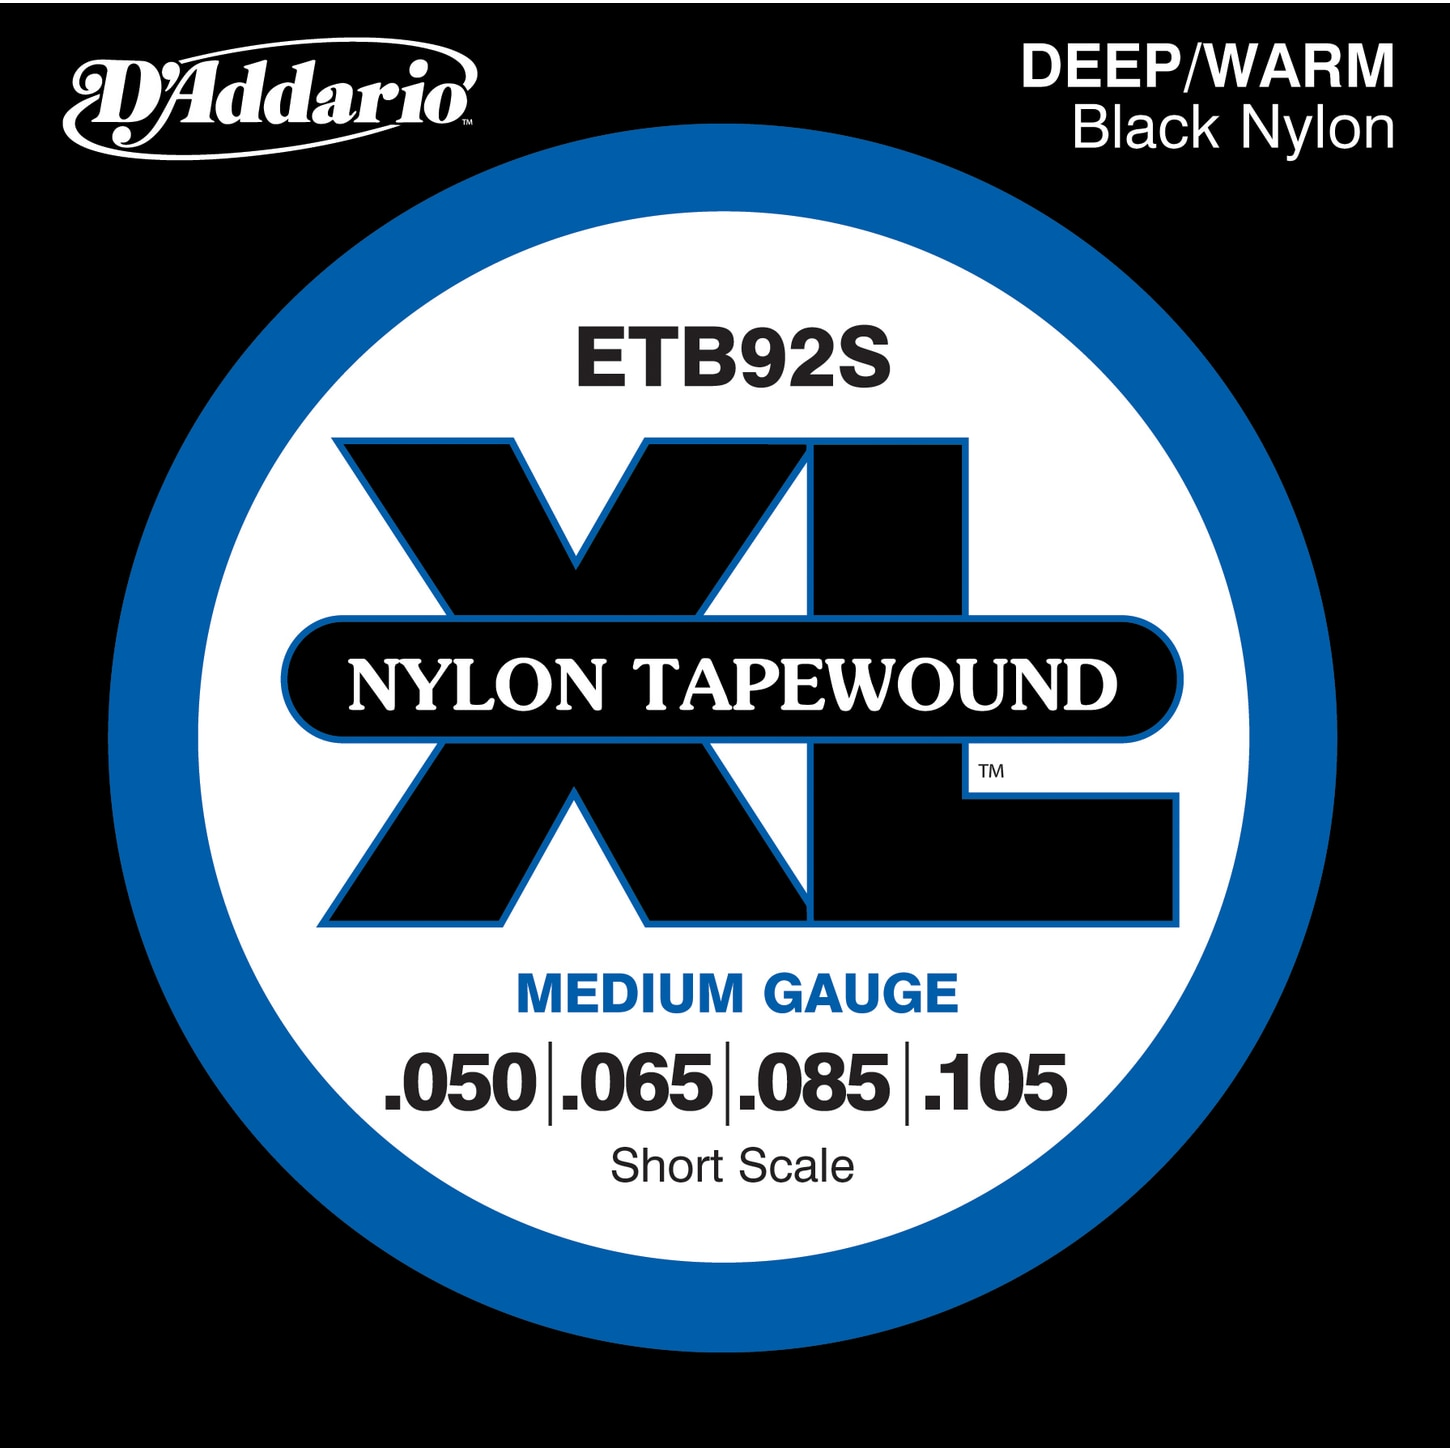 Addario ETB92 Black Nylon Tapewound Short Scale Bass Strings ...